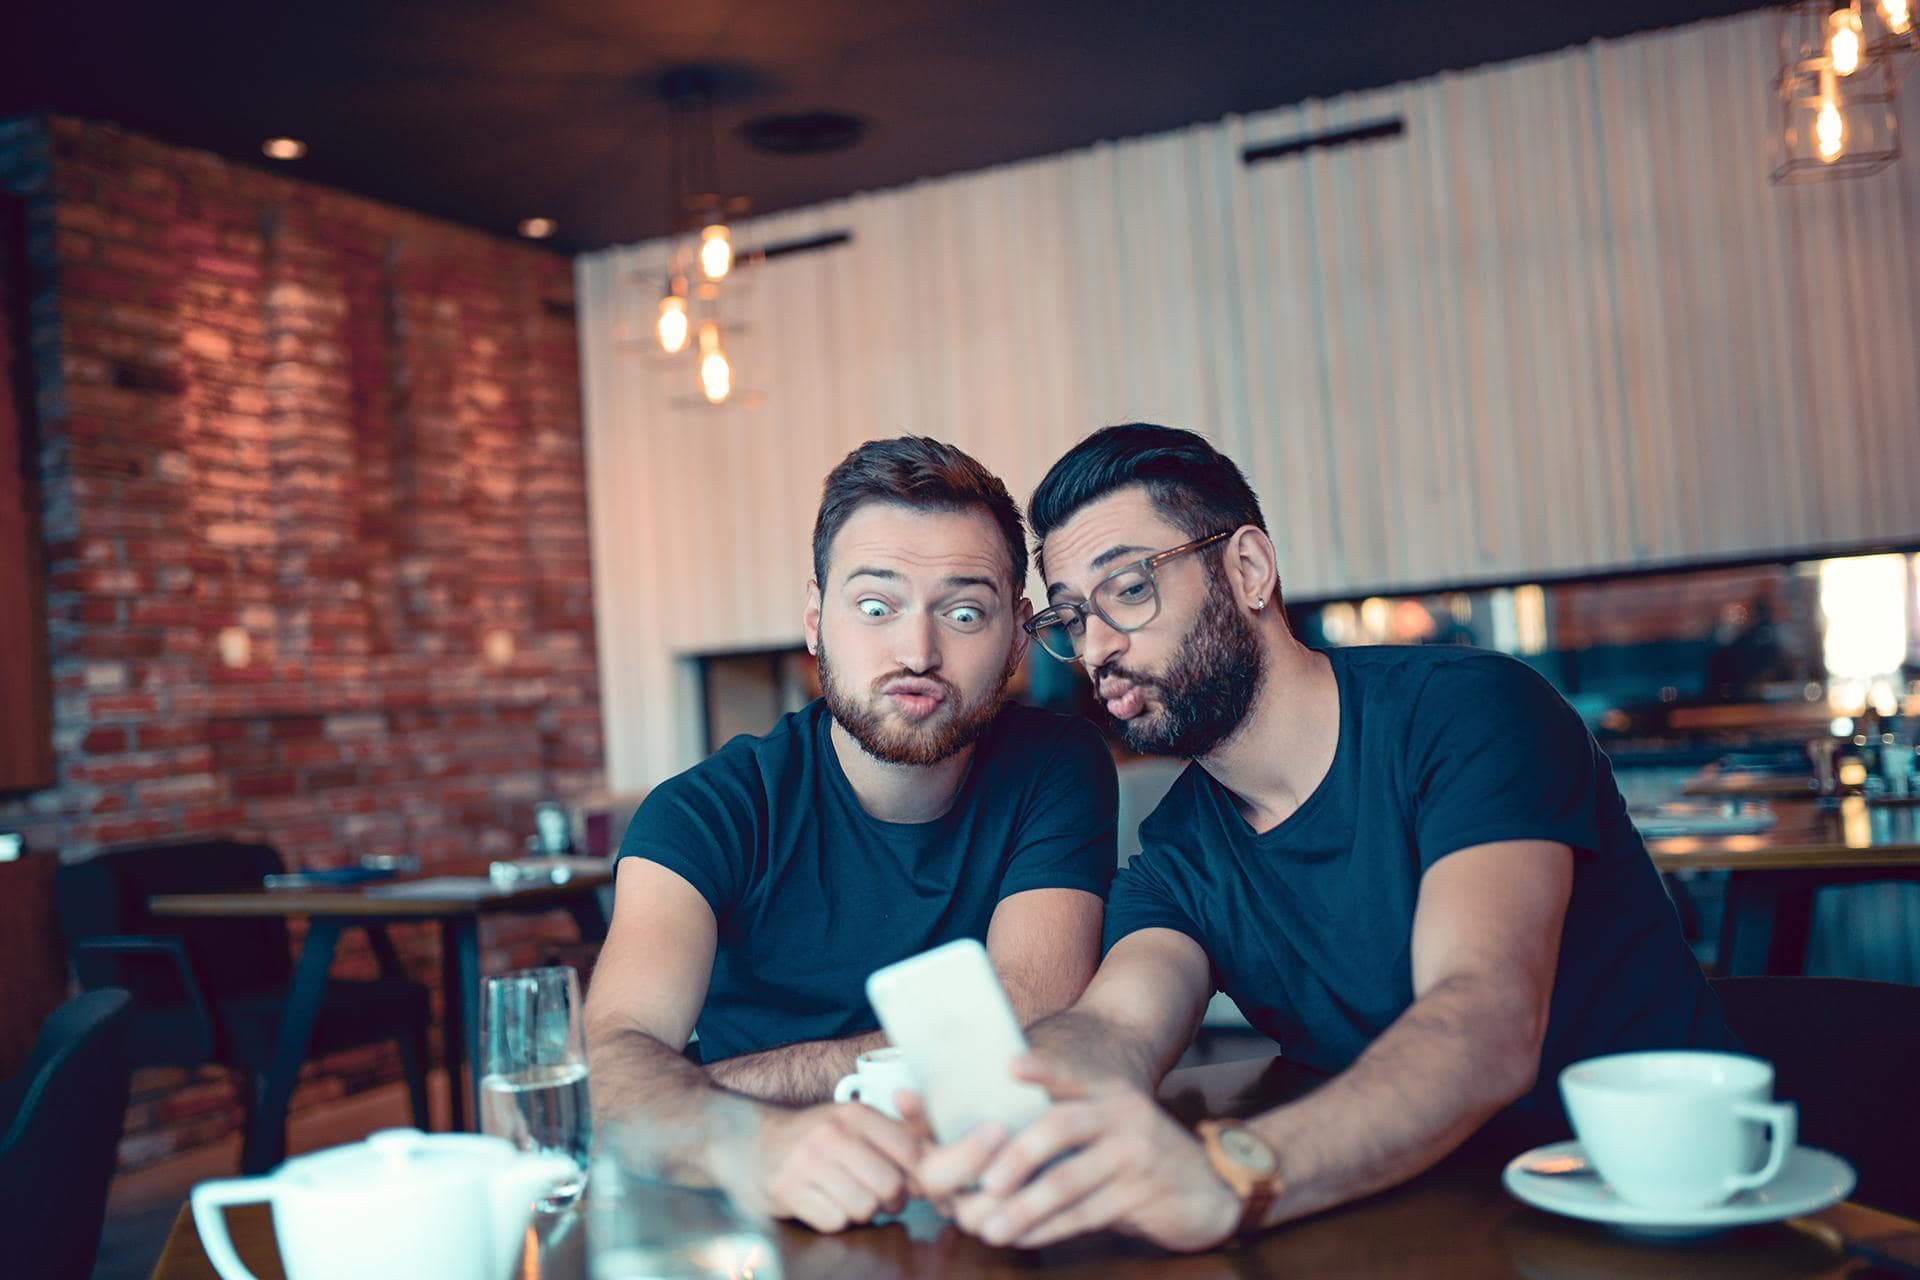 Best gay dating advice May 28